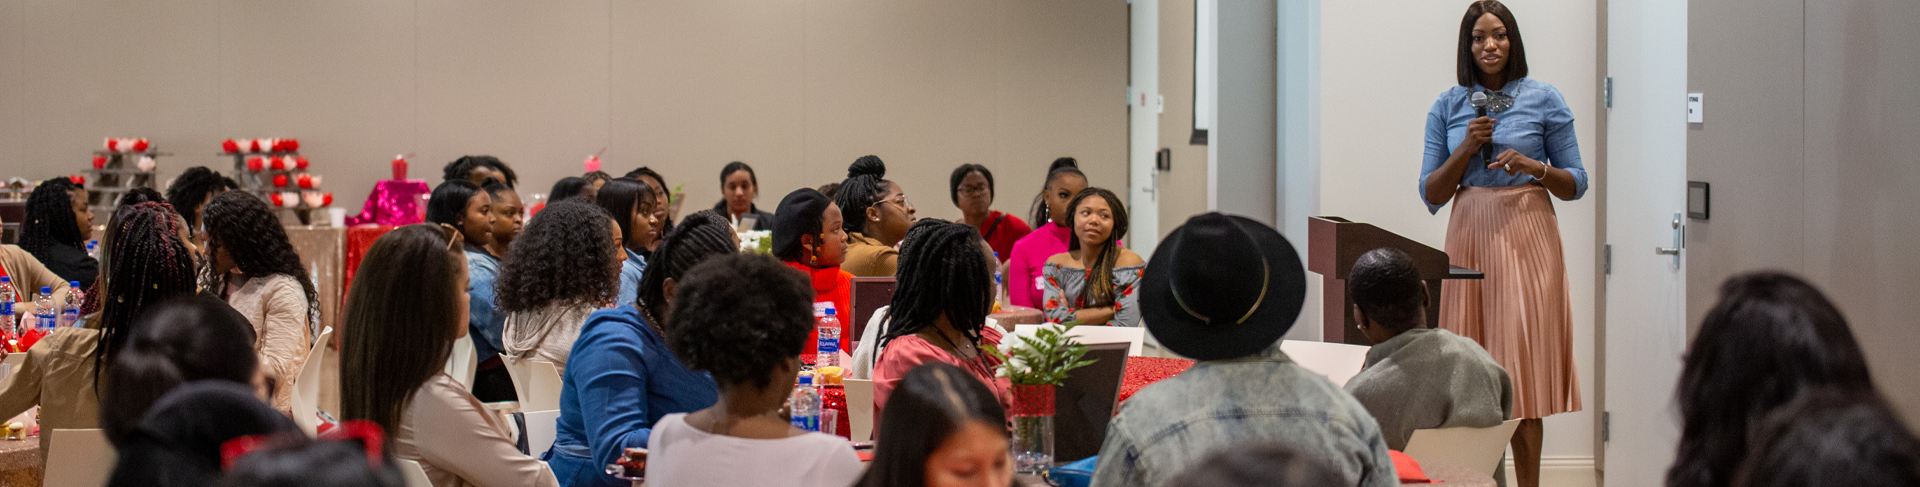 photo of sister to sister luncheon with large group of females sitting at tables listening to person presenting